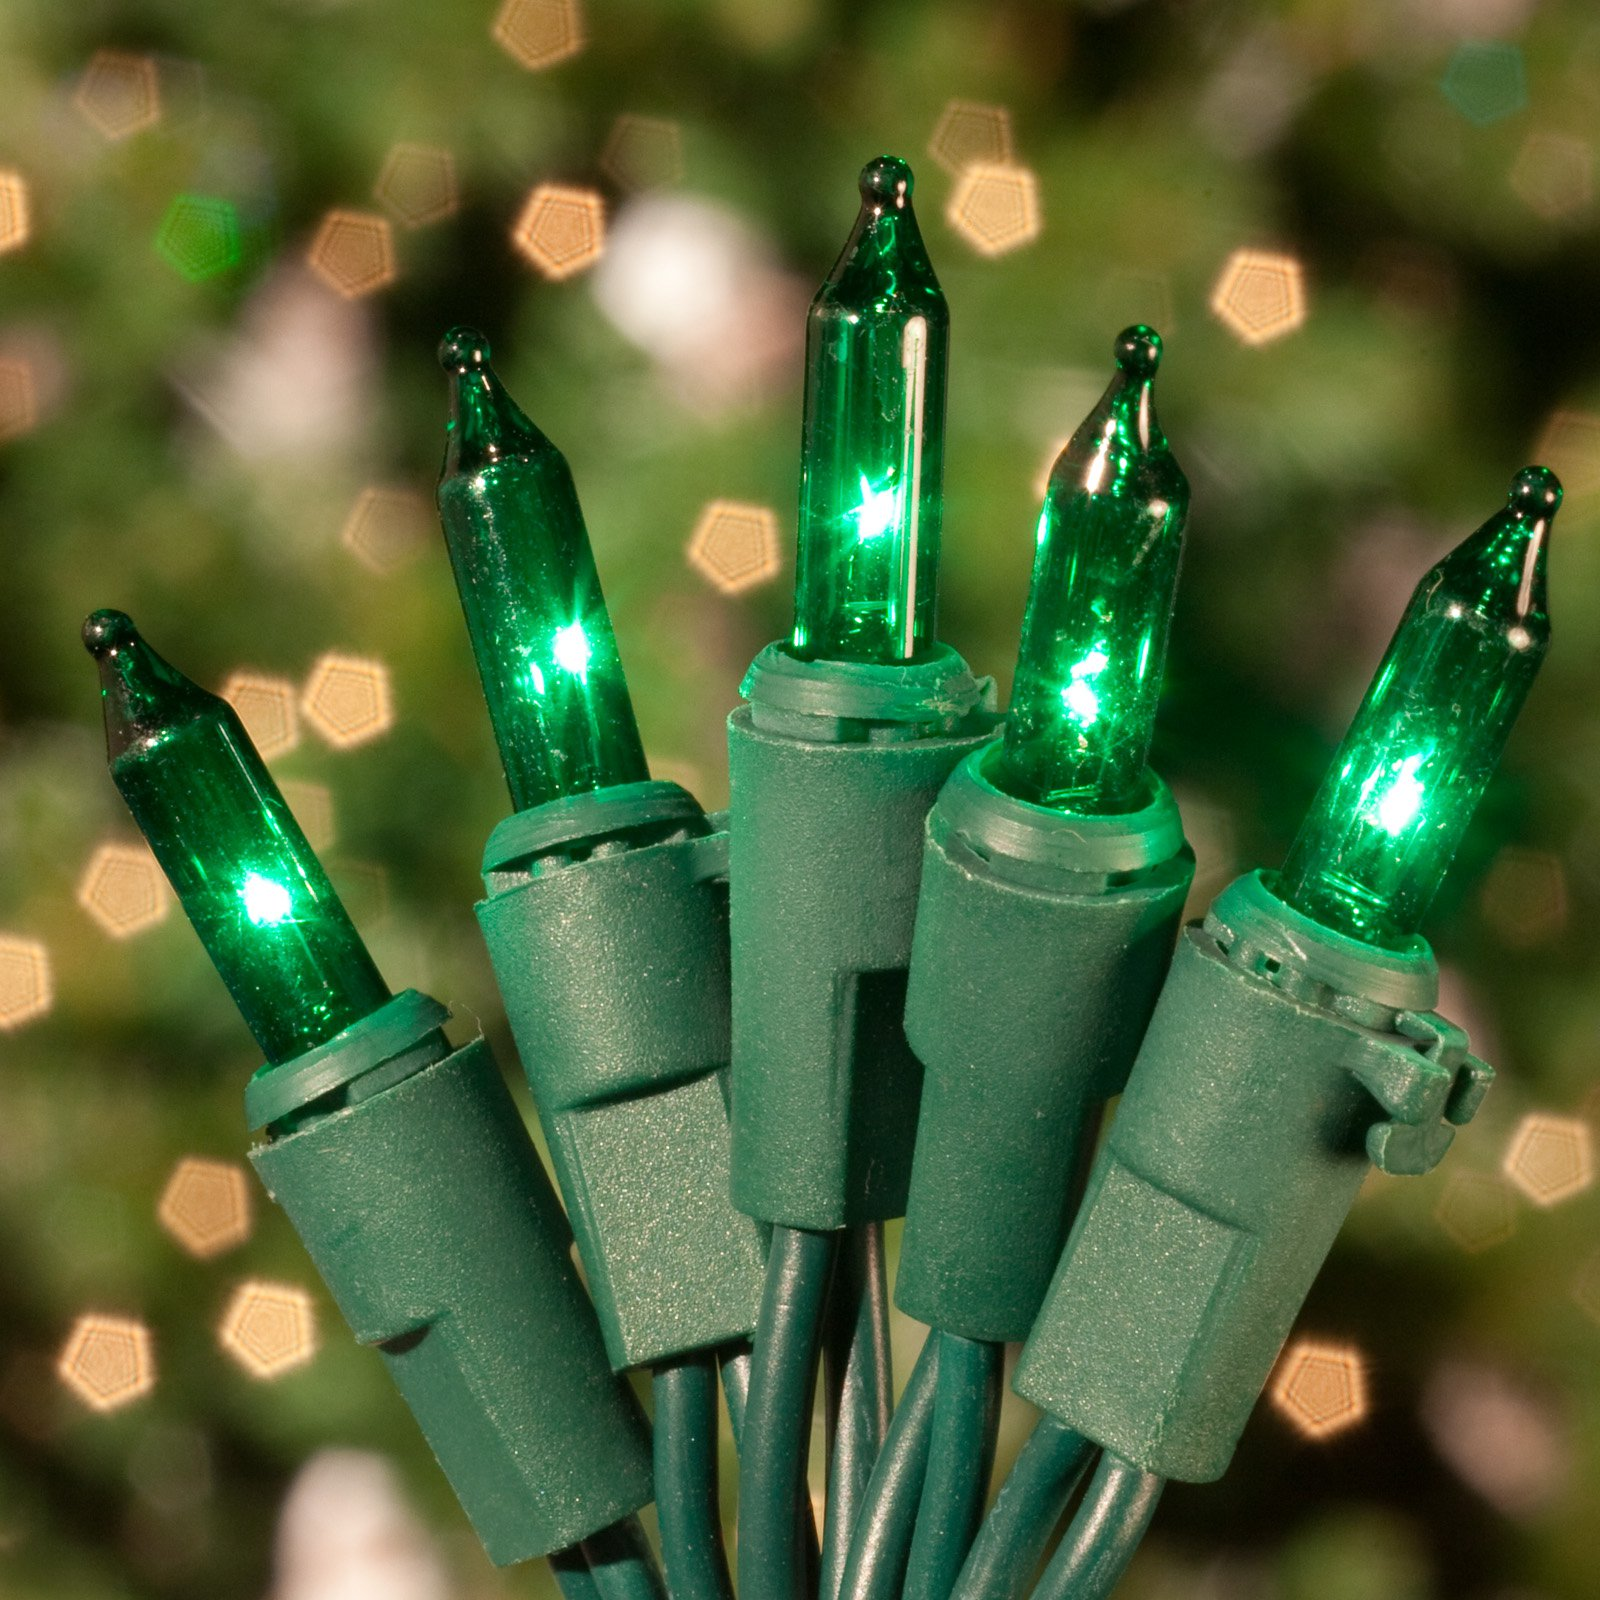 Commercial 100 ct. Green Mini Lights with Green Wire 6 in. Spacing (Case)